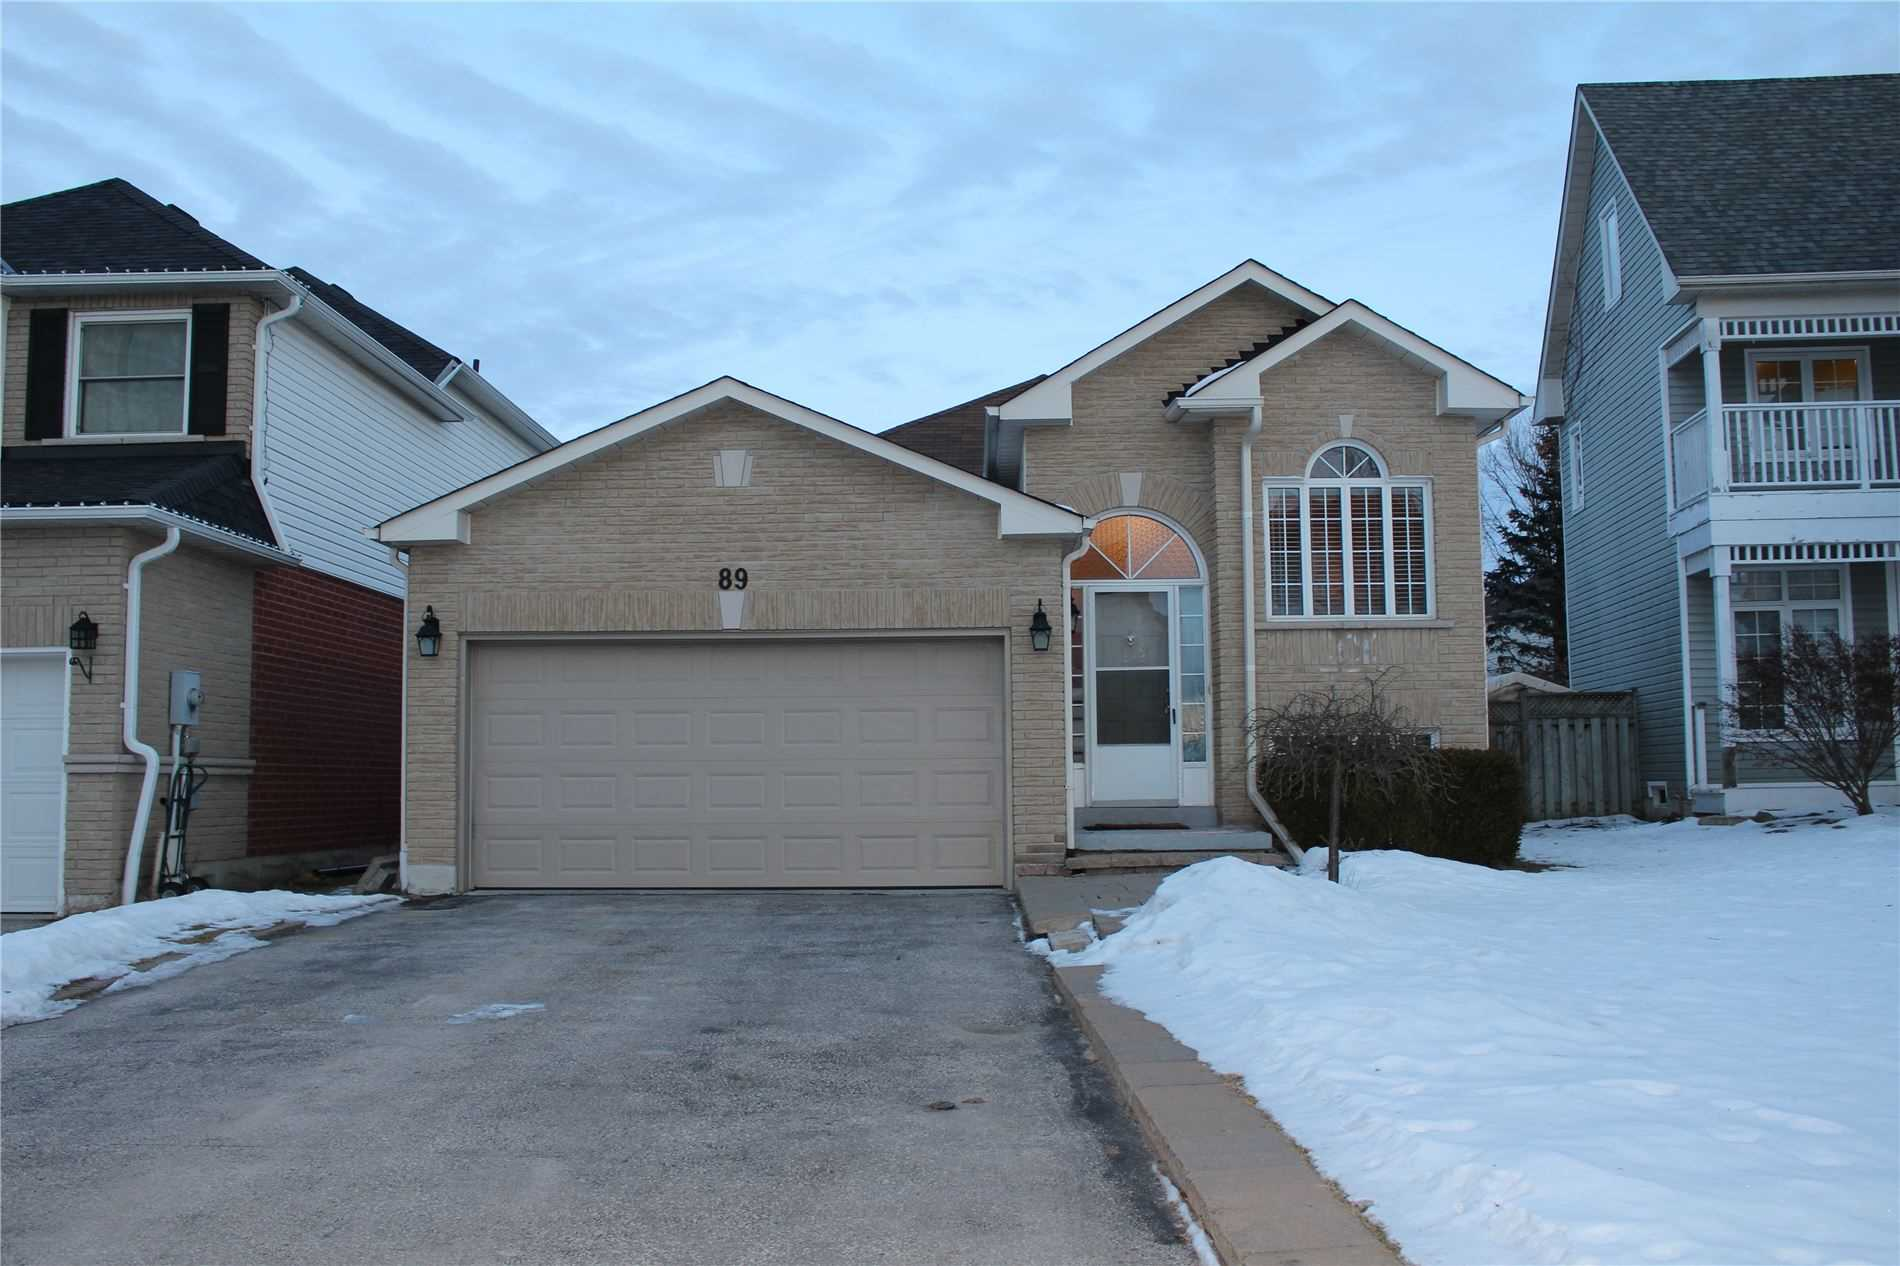 pictures of house for sale MLS: N4685456 located at 89 Mainprize Cres, East Gwillimbury L0G1M0